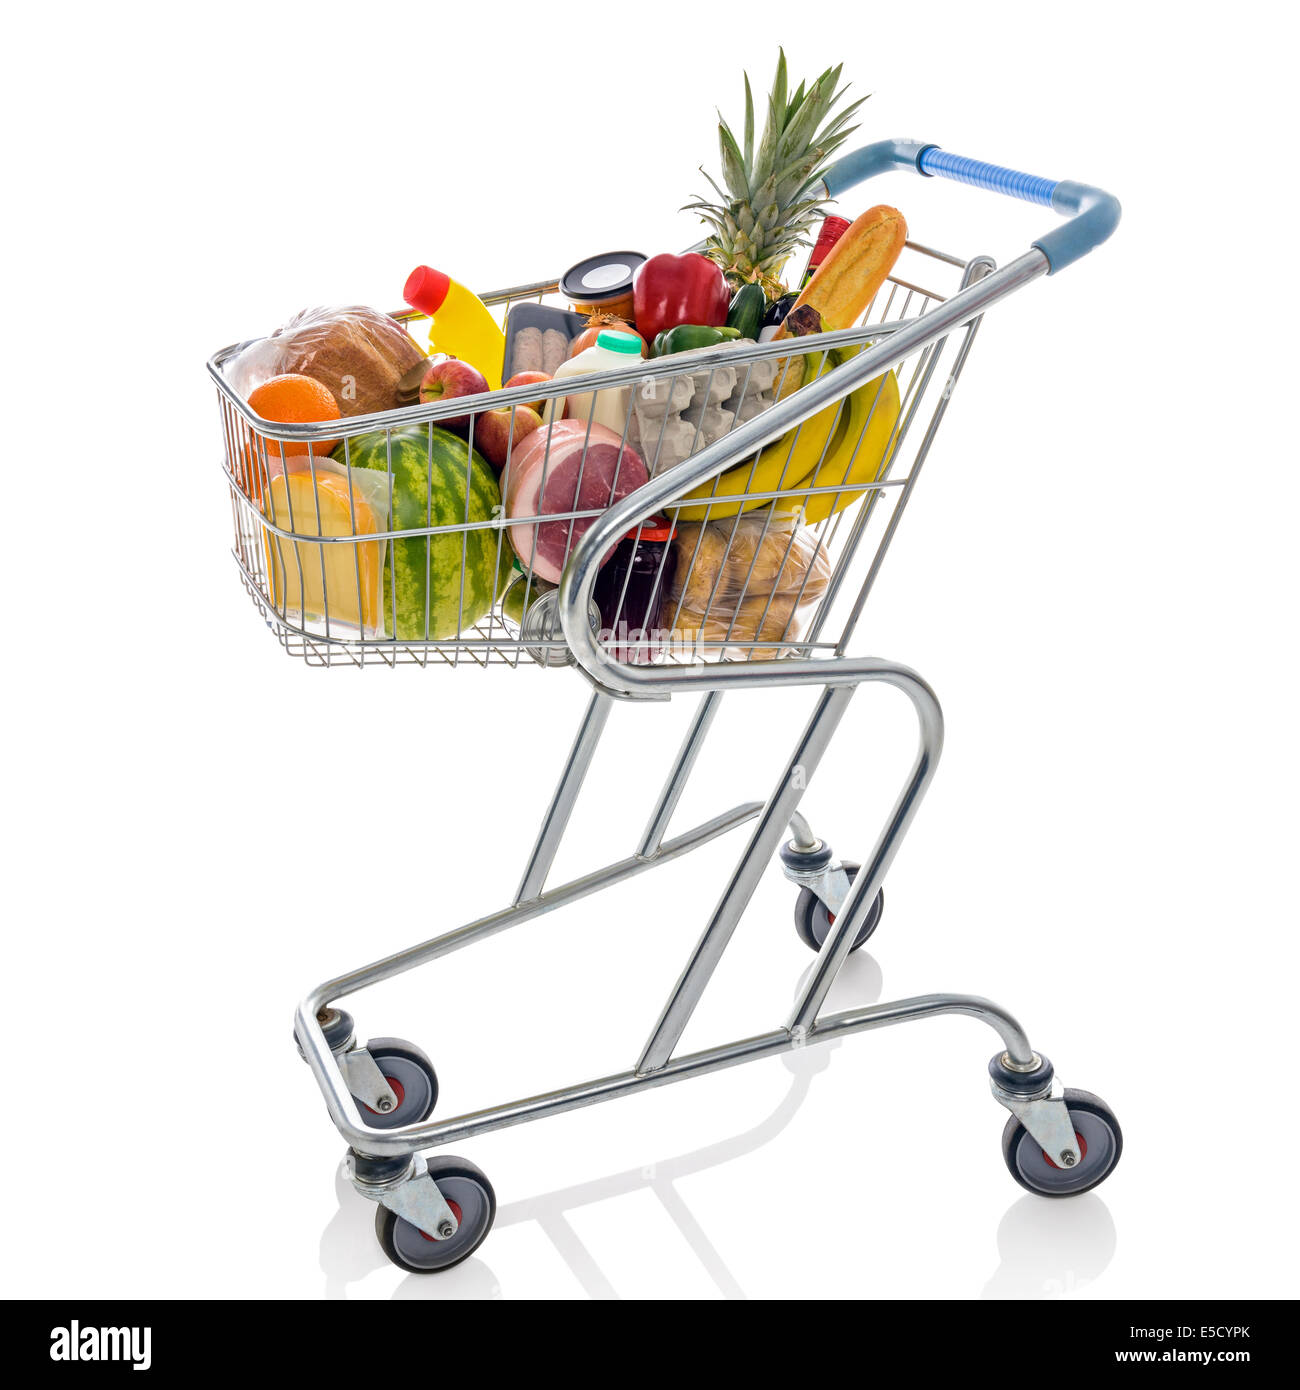 Shopping trolley full of fresh groceries isolated on a white background. - Stock Image